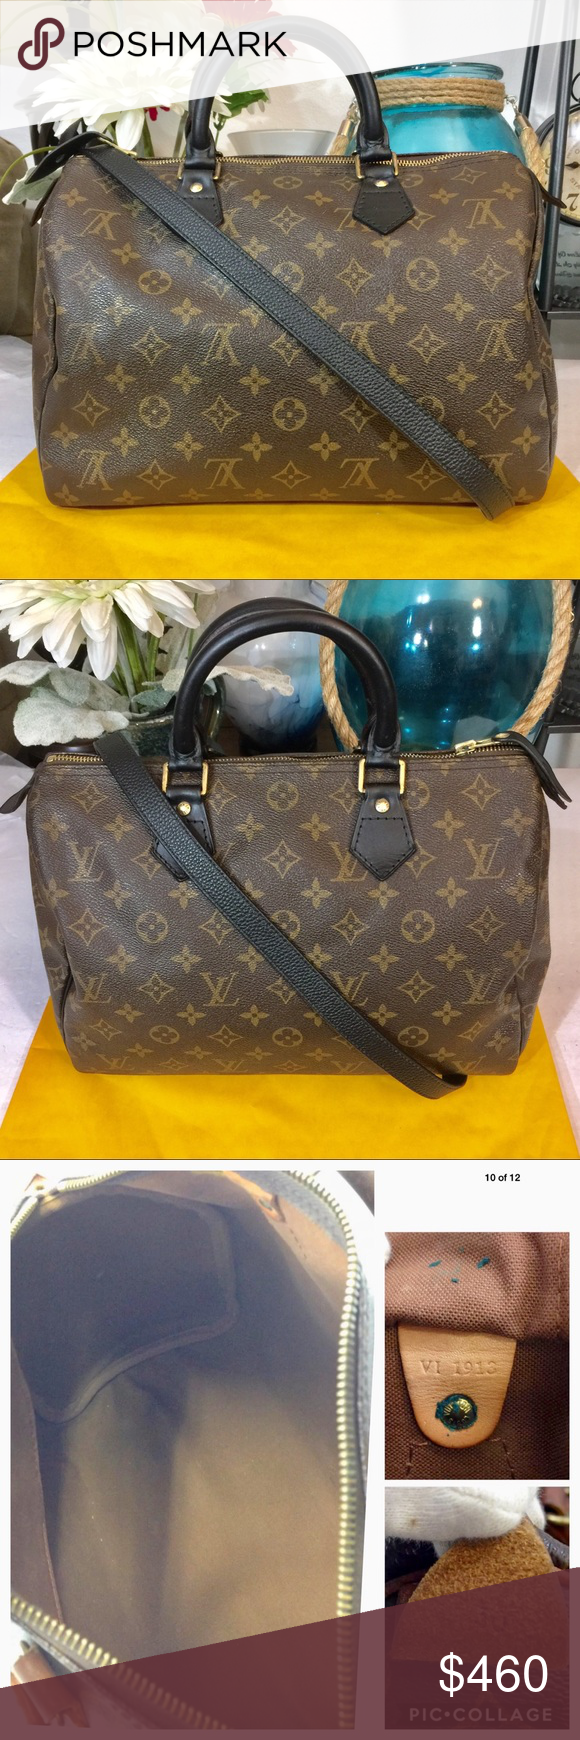 6765053f617a Louis Vuitton Speedy 30 Boston Handbag 👜 Black Very good condition Custom  Dyed and detailed leather